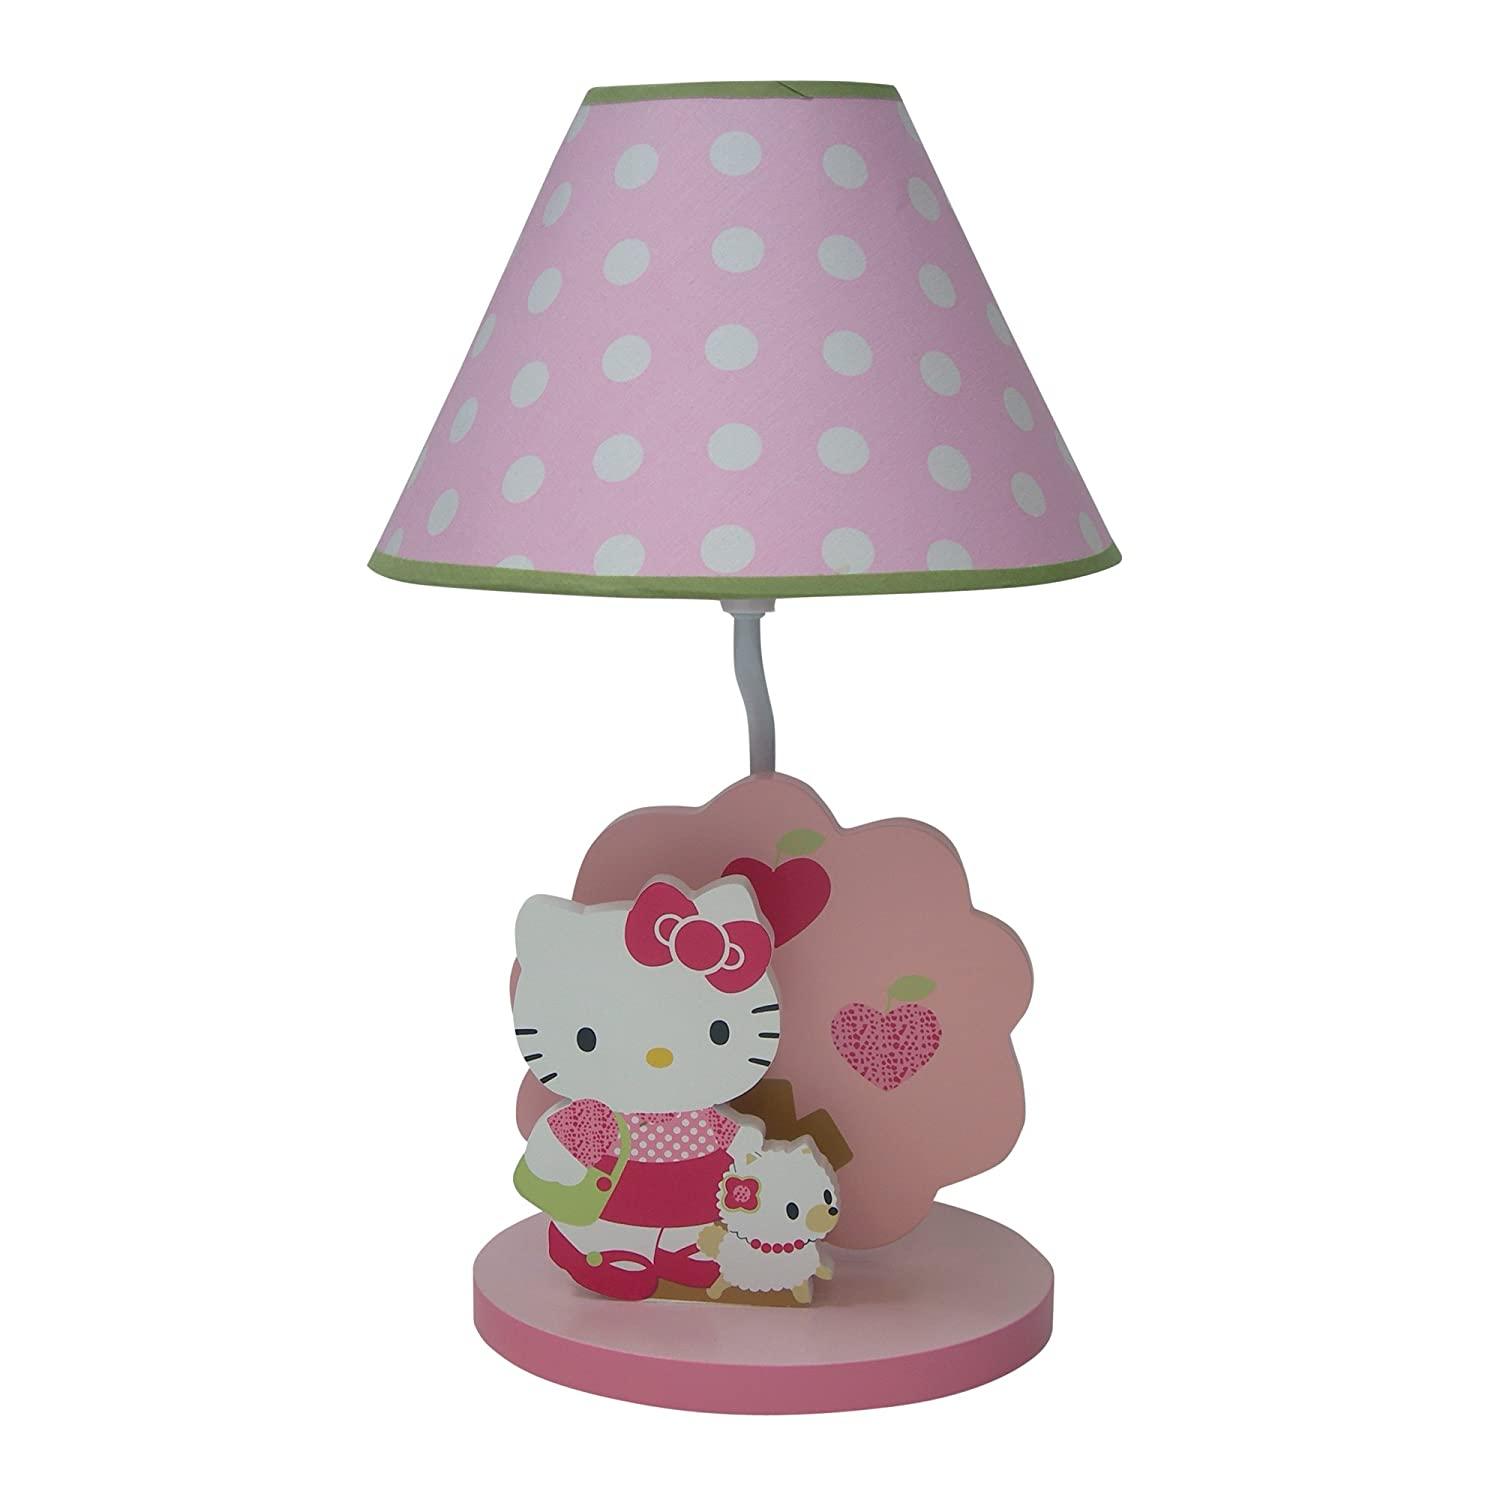 hello kitty and puppy crib bedding and decor baby bedding and accessories. Black Bedroom Furniture Sets. Home Design Ideas